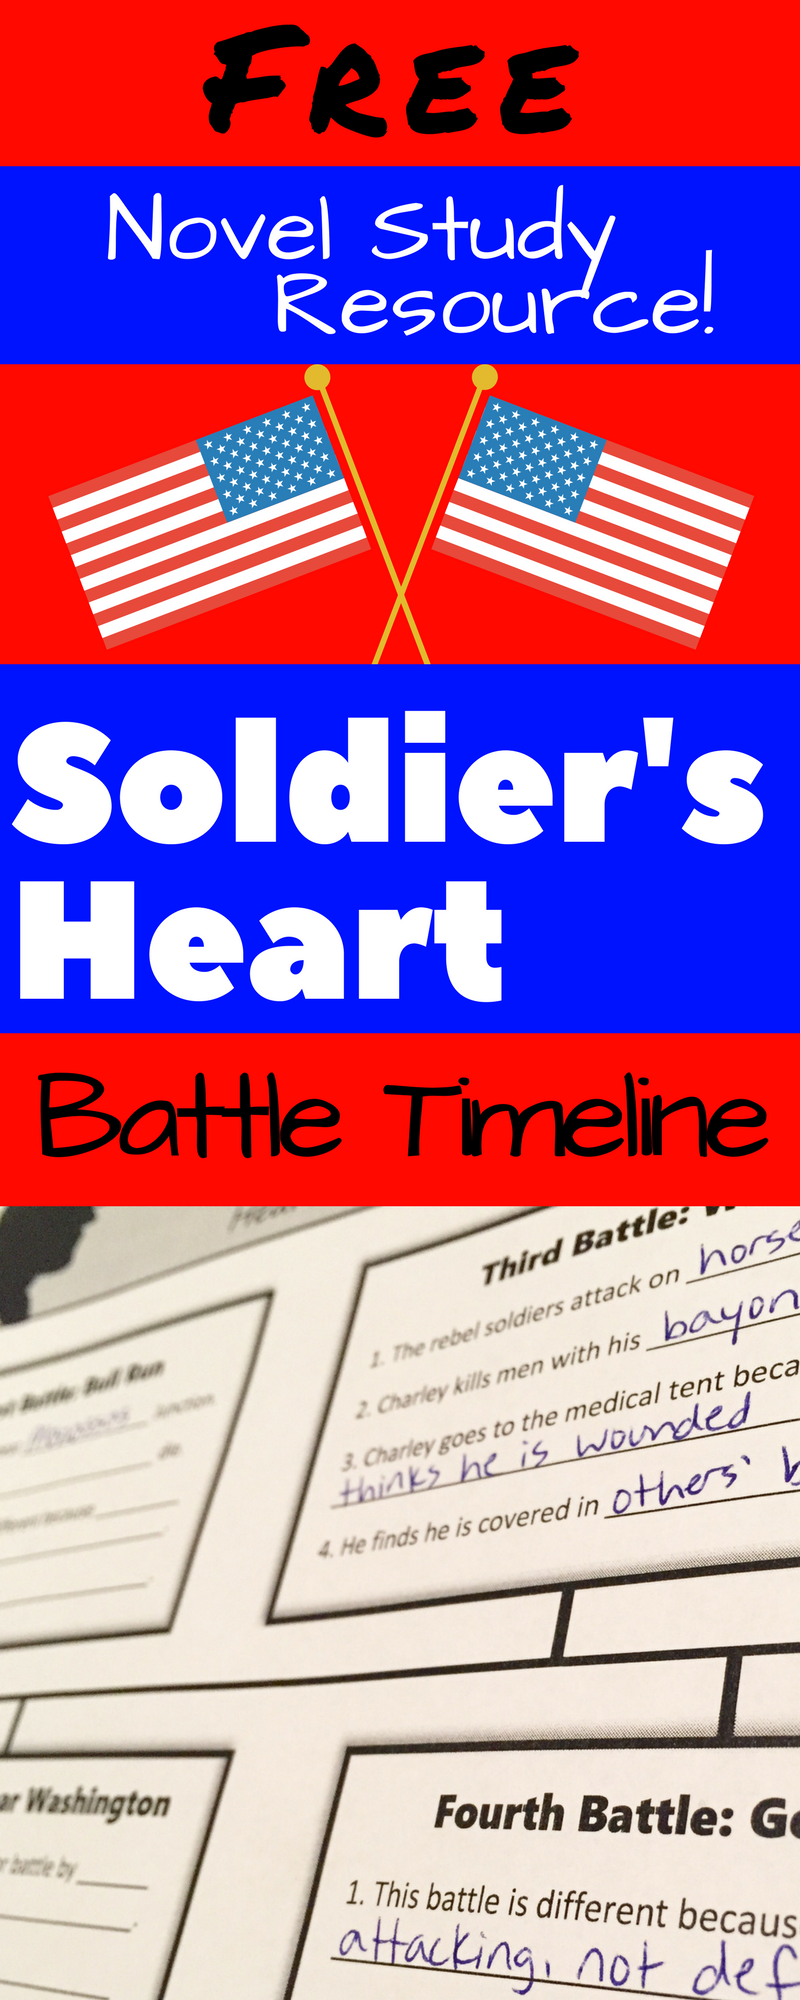 Soldier's Heart Timeline Comparing Battles Reading